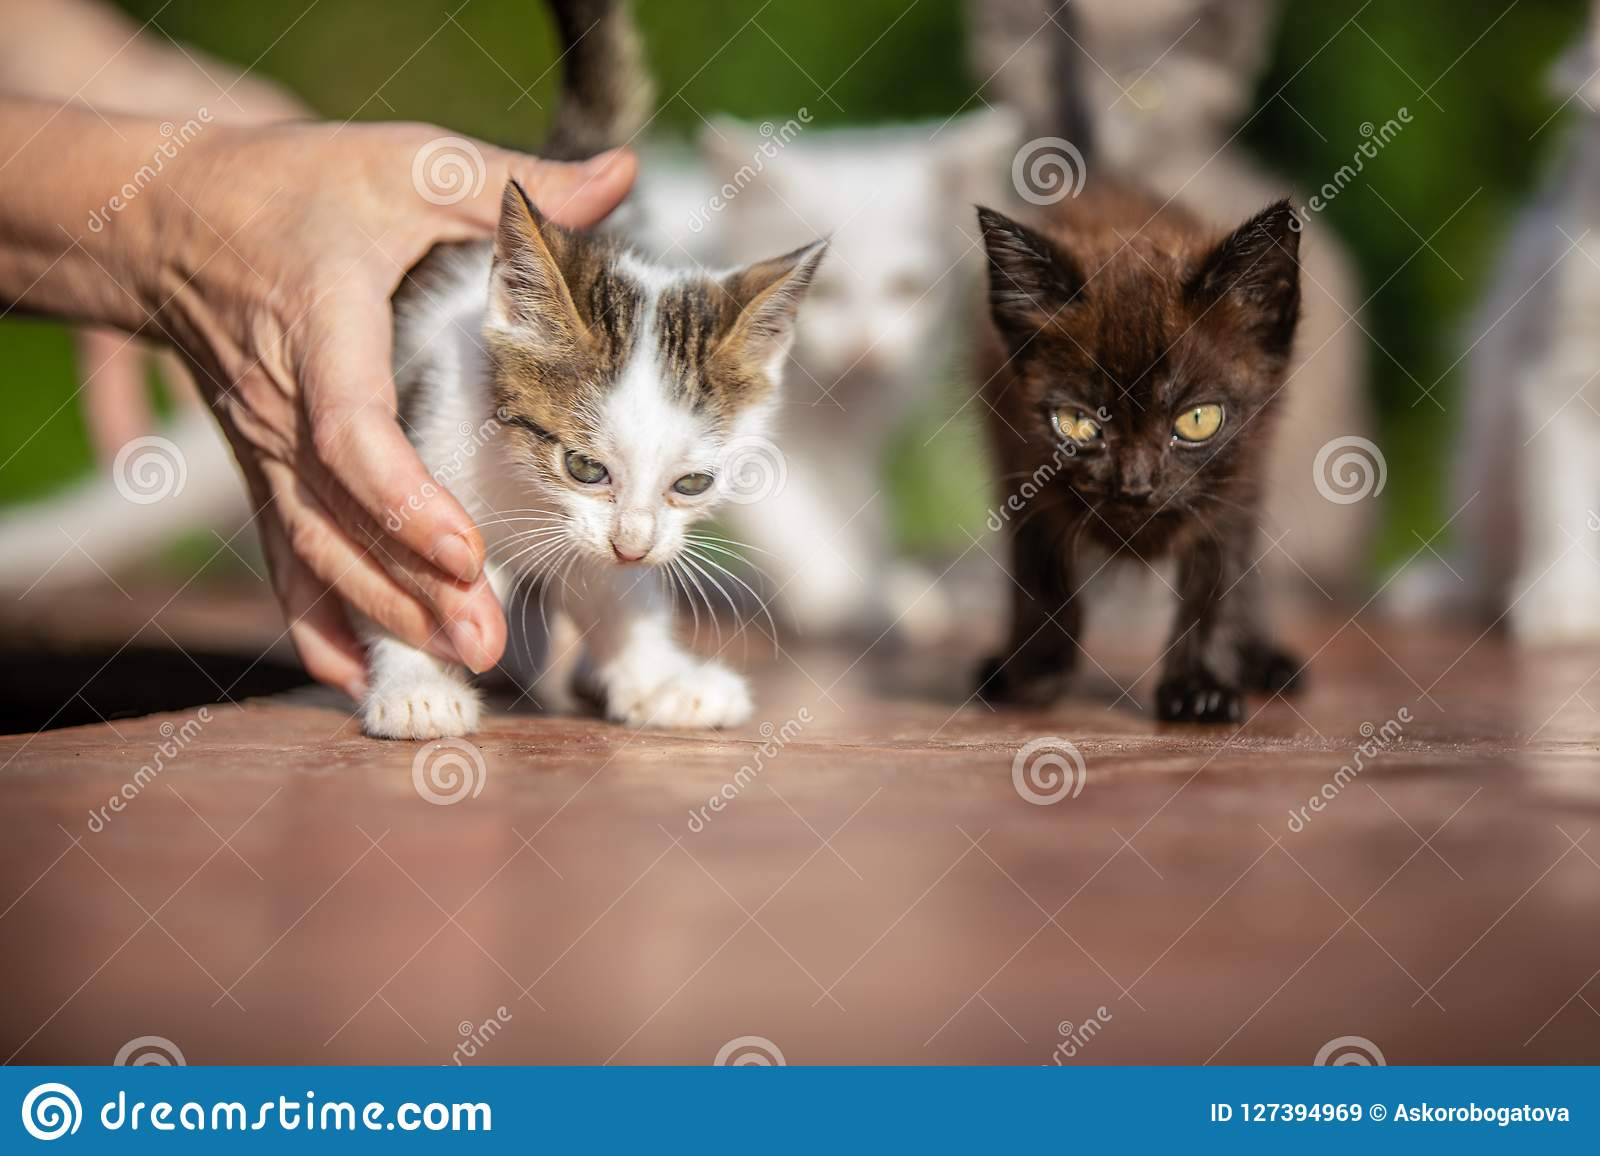 Many small kittens in the hands of a woman on blurred background